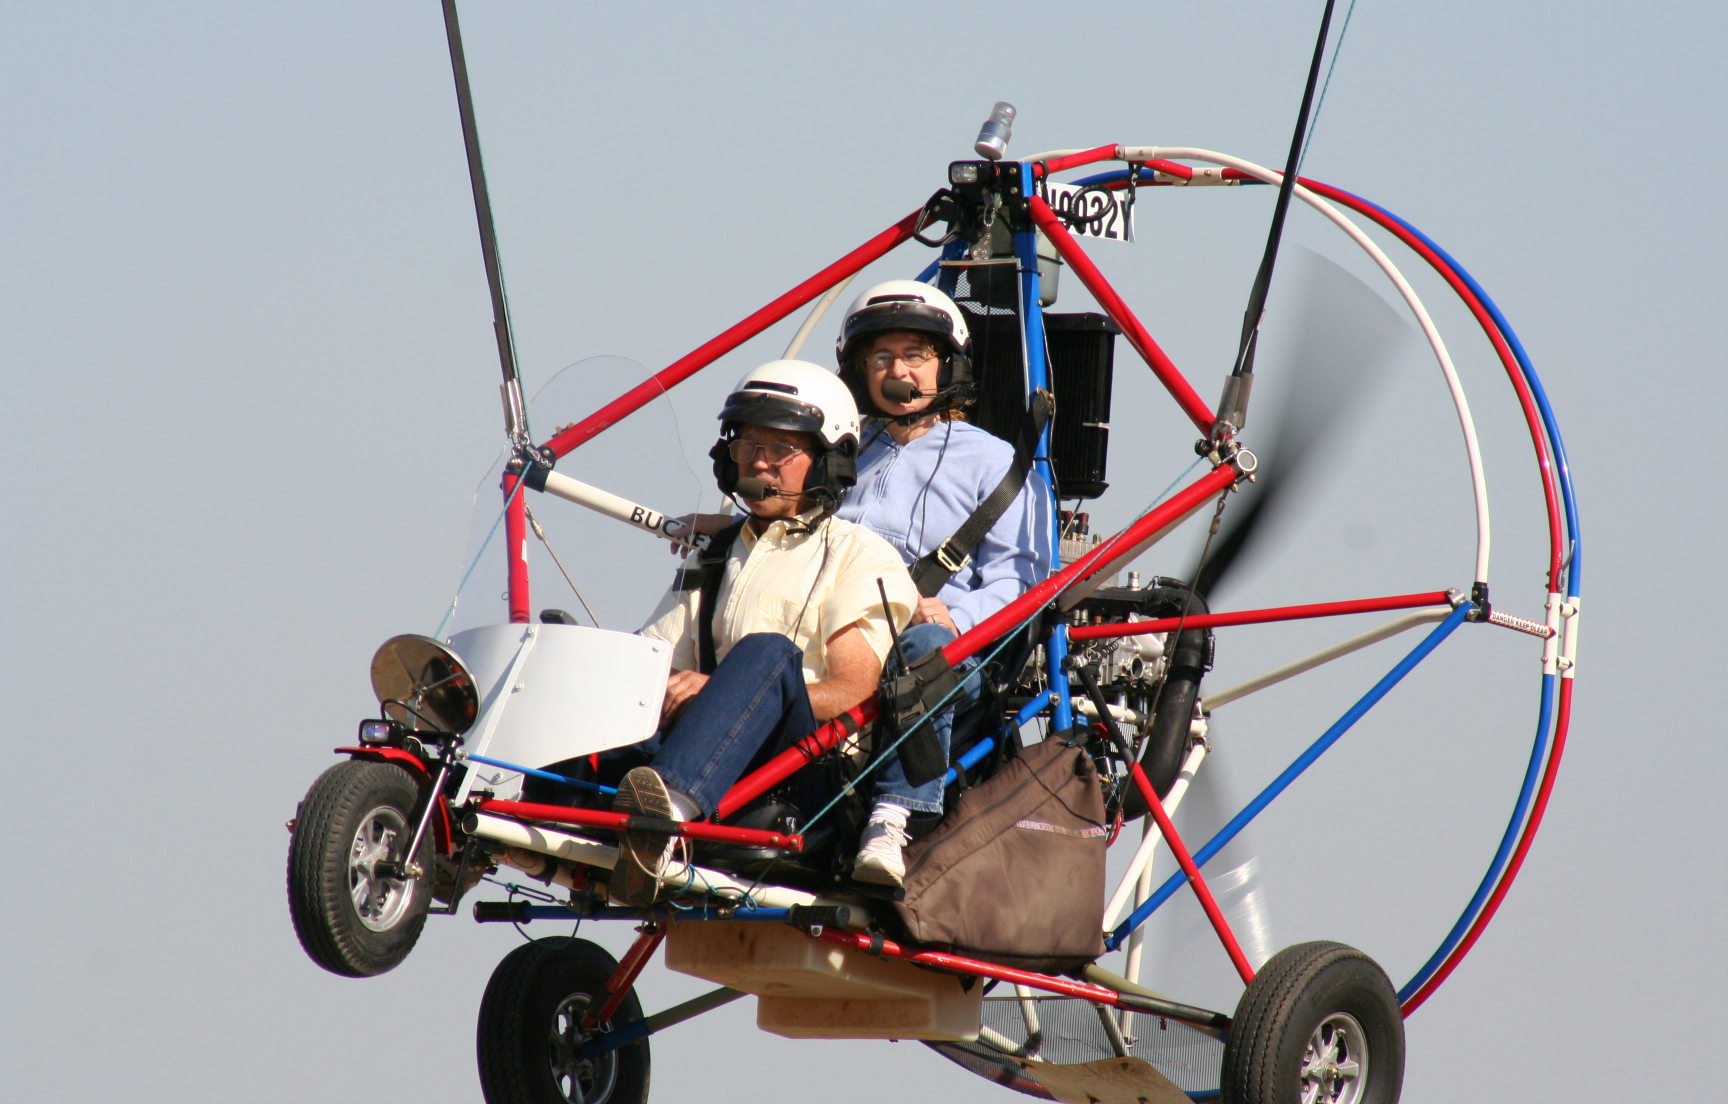 Corning, CA – Dec 13-14, 2019  Repairman Inspection-  Powered Parachute